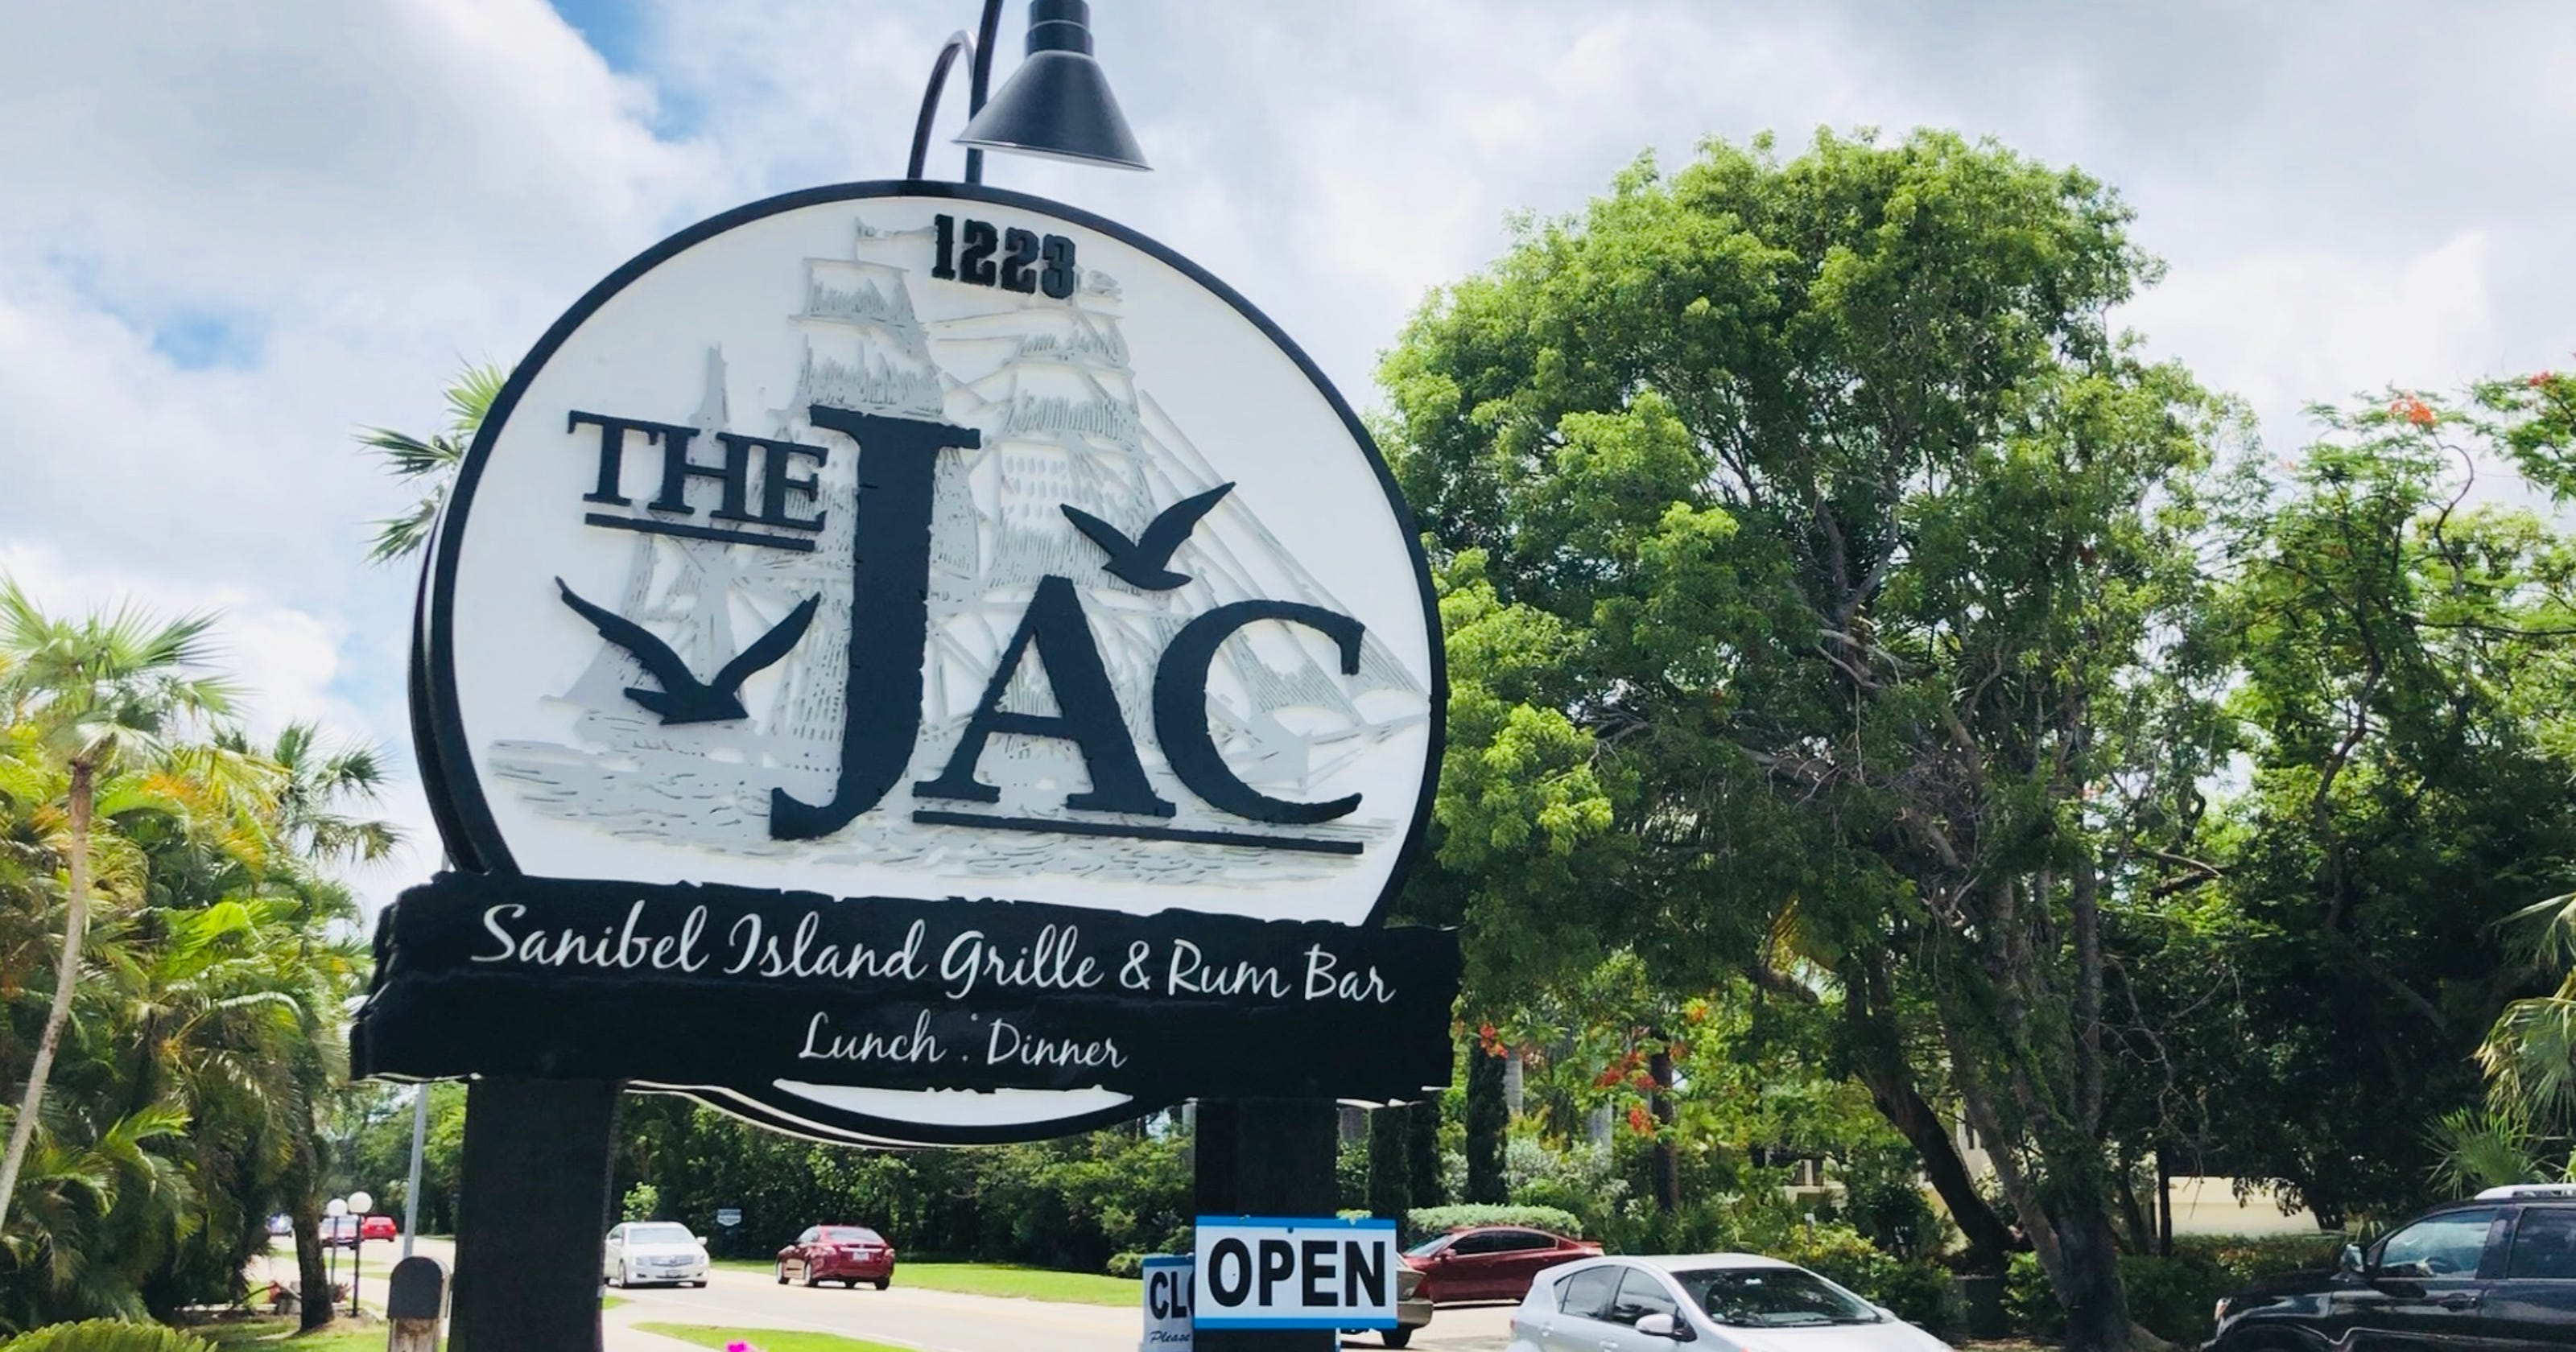 The Jac Island Bar & Grille opens on Sanibel